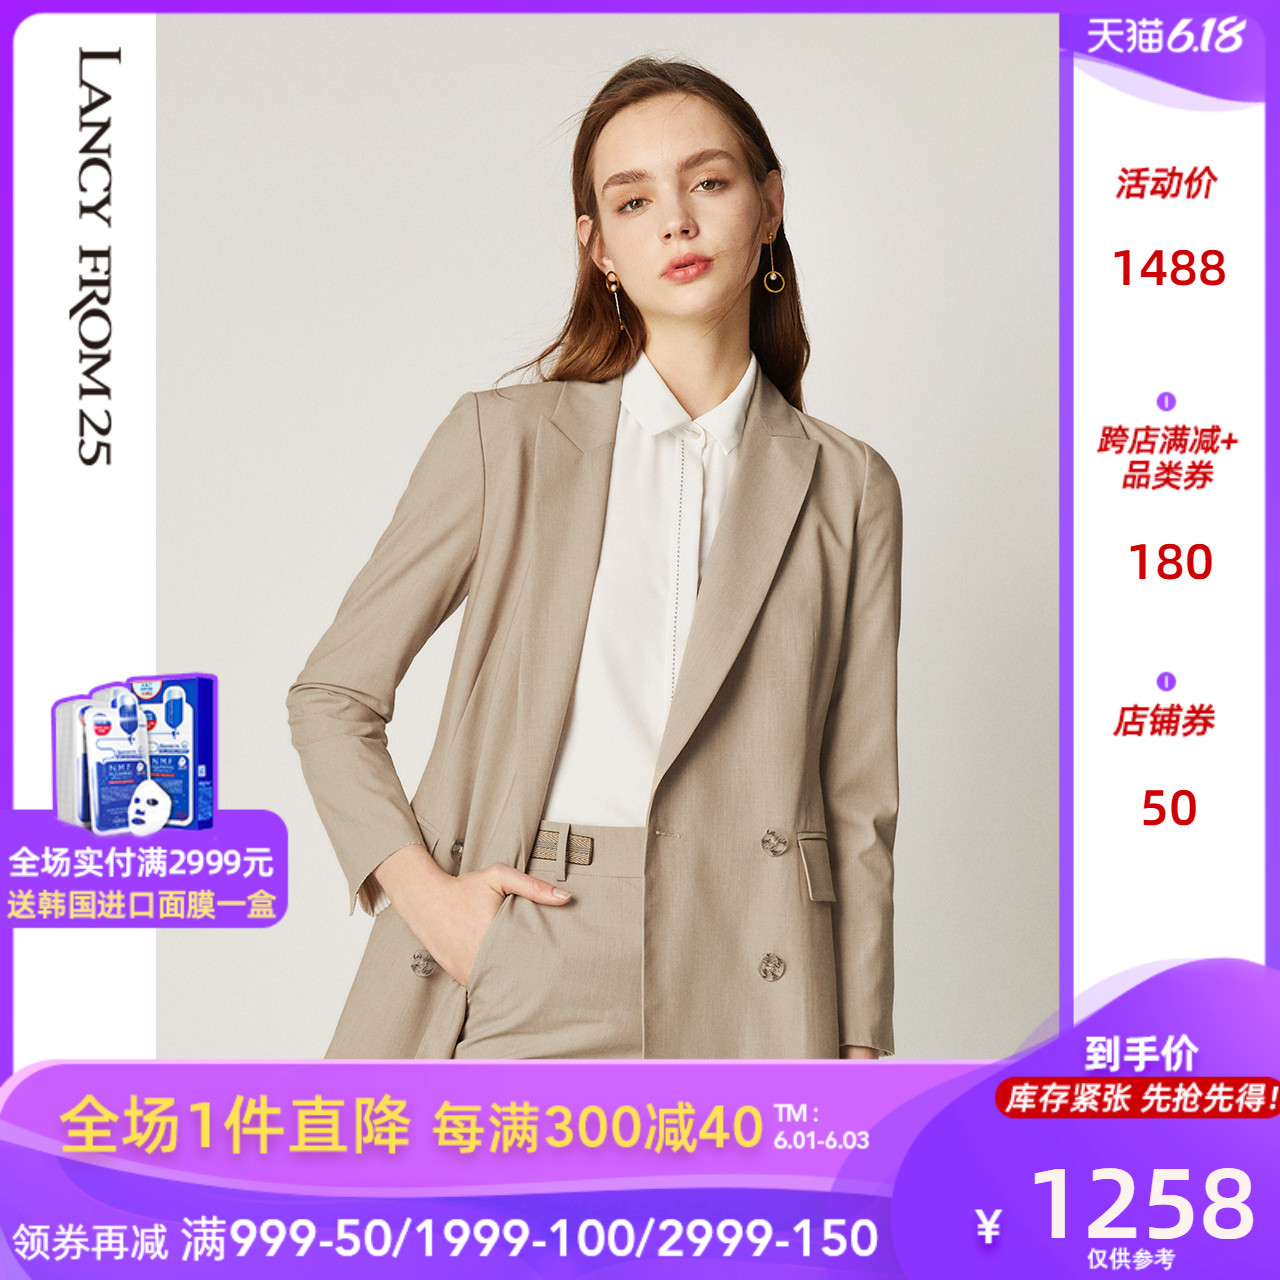 Langzi women's suit store same style fall / summer 2020 fashion Retro